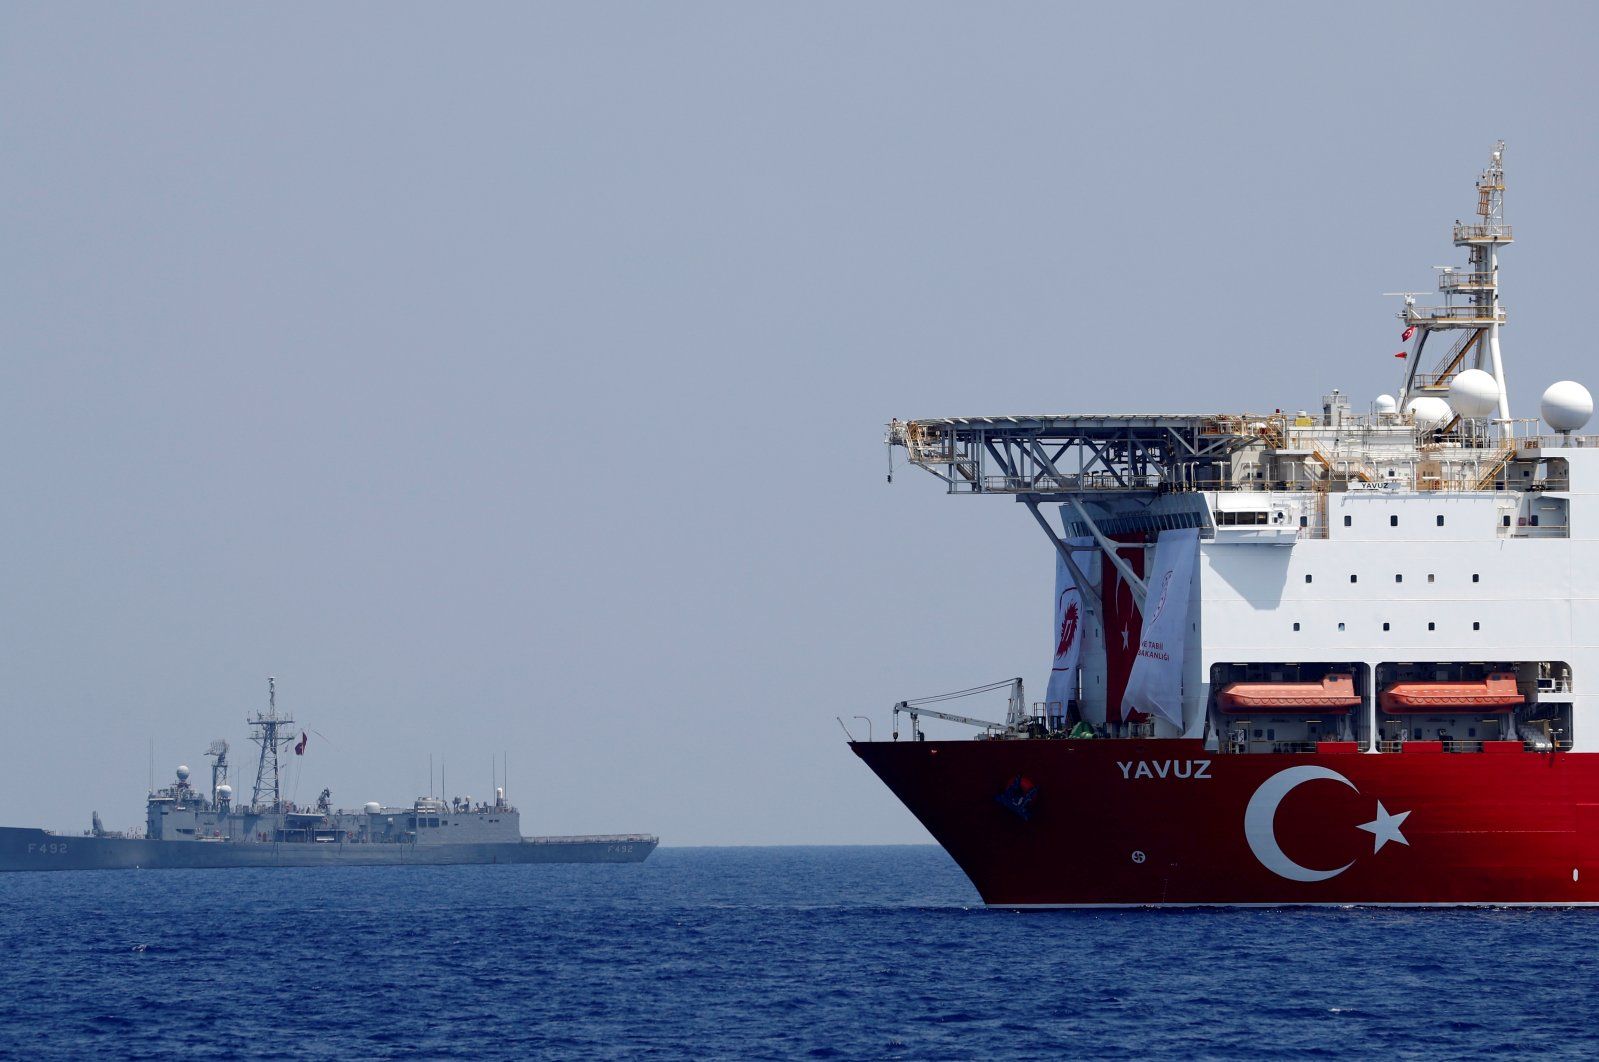 The Turkish drilling vessel Yavuz is seen being escorted by a Turkish Navy frigate in the Eastern Mediterranean, Aug. 6, 2019. (REUTERS)